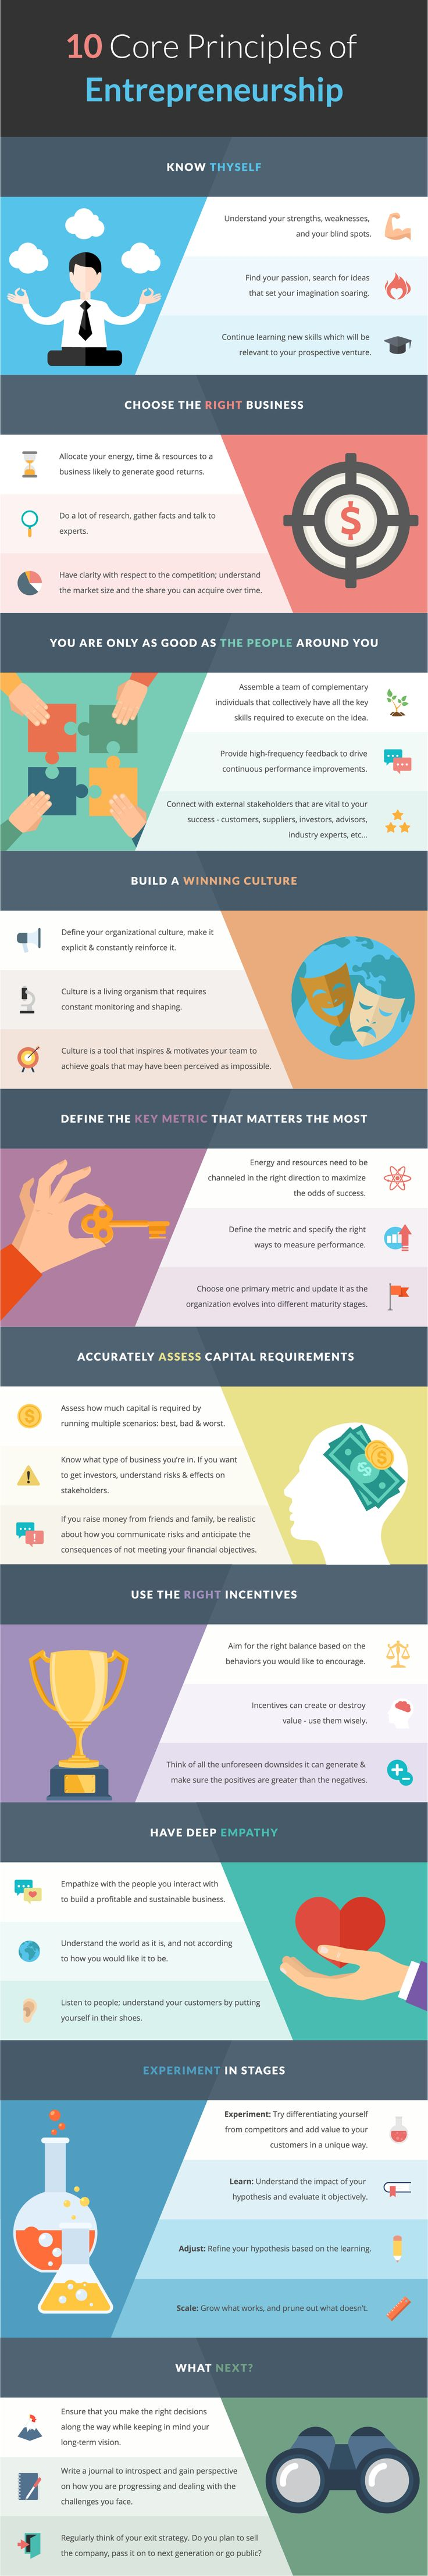 10 Core Principles of Entrepreneurship #infographic #Entrepreneurship #Business